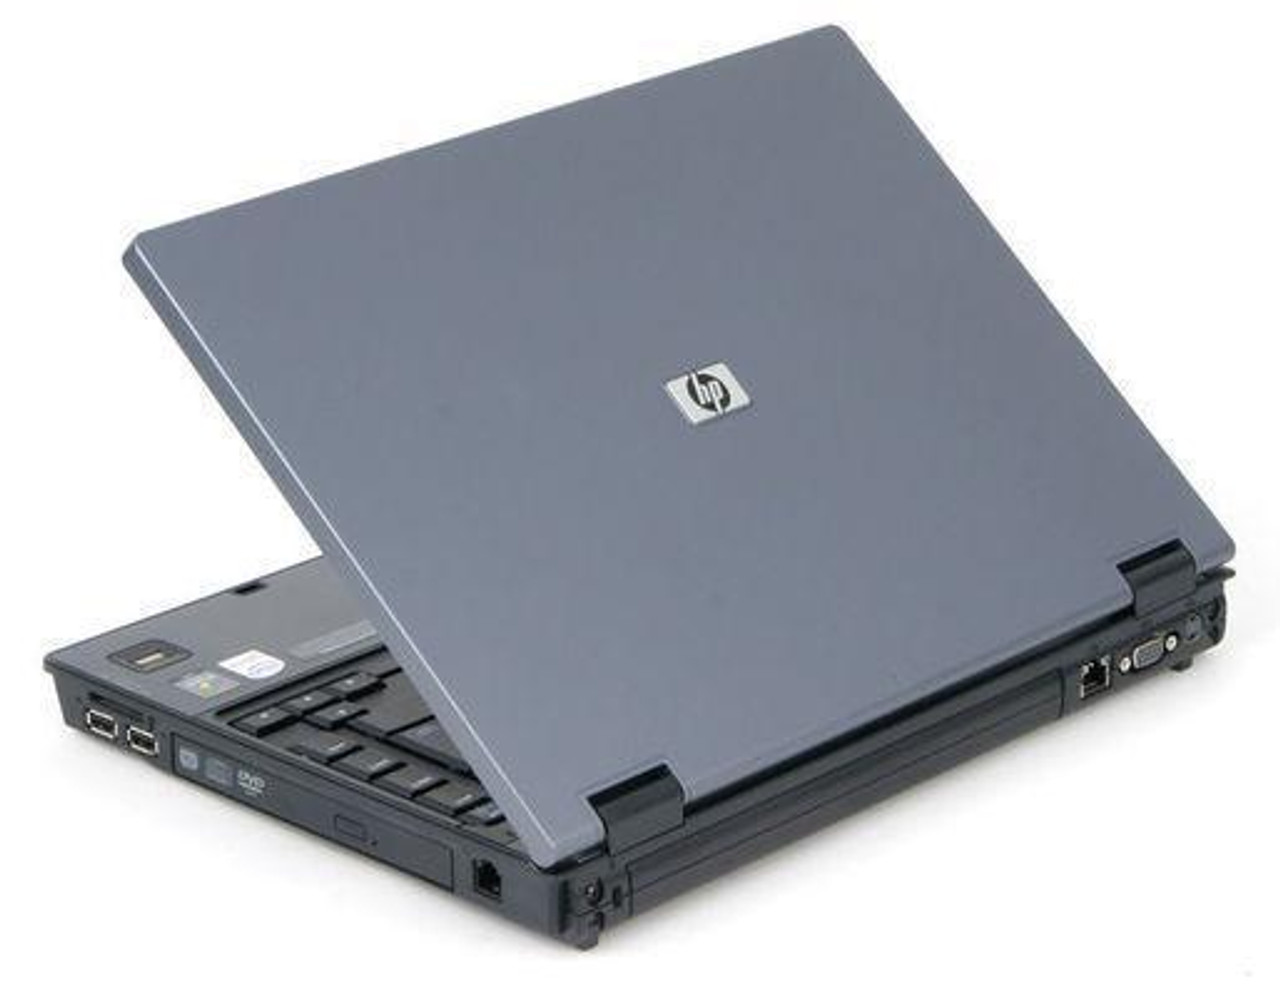 HP Compaq 6910p Laptop Intel Core 2 Duo 2.2GHz, 4GB Ram, 80GB HDD, DVD-RW, Windows 7 Pro 64 Notebook